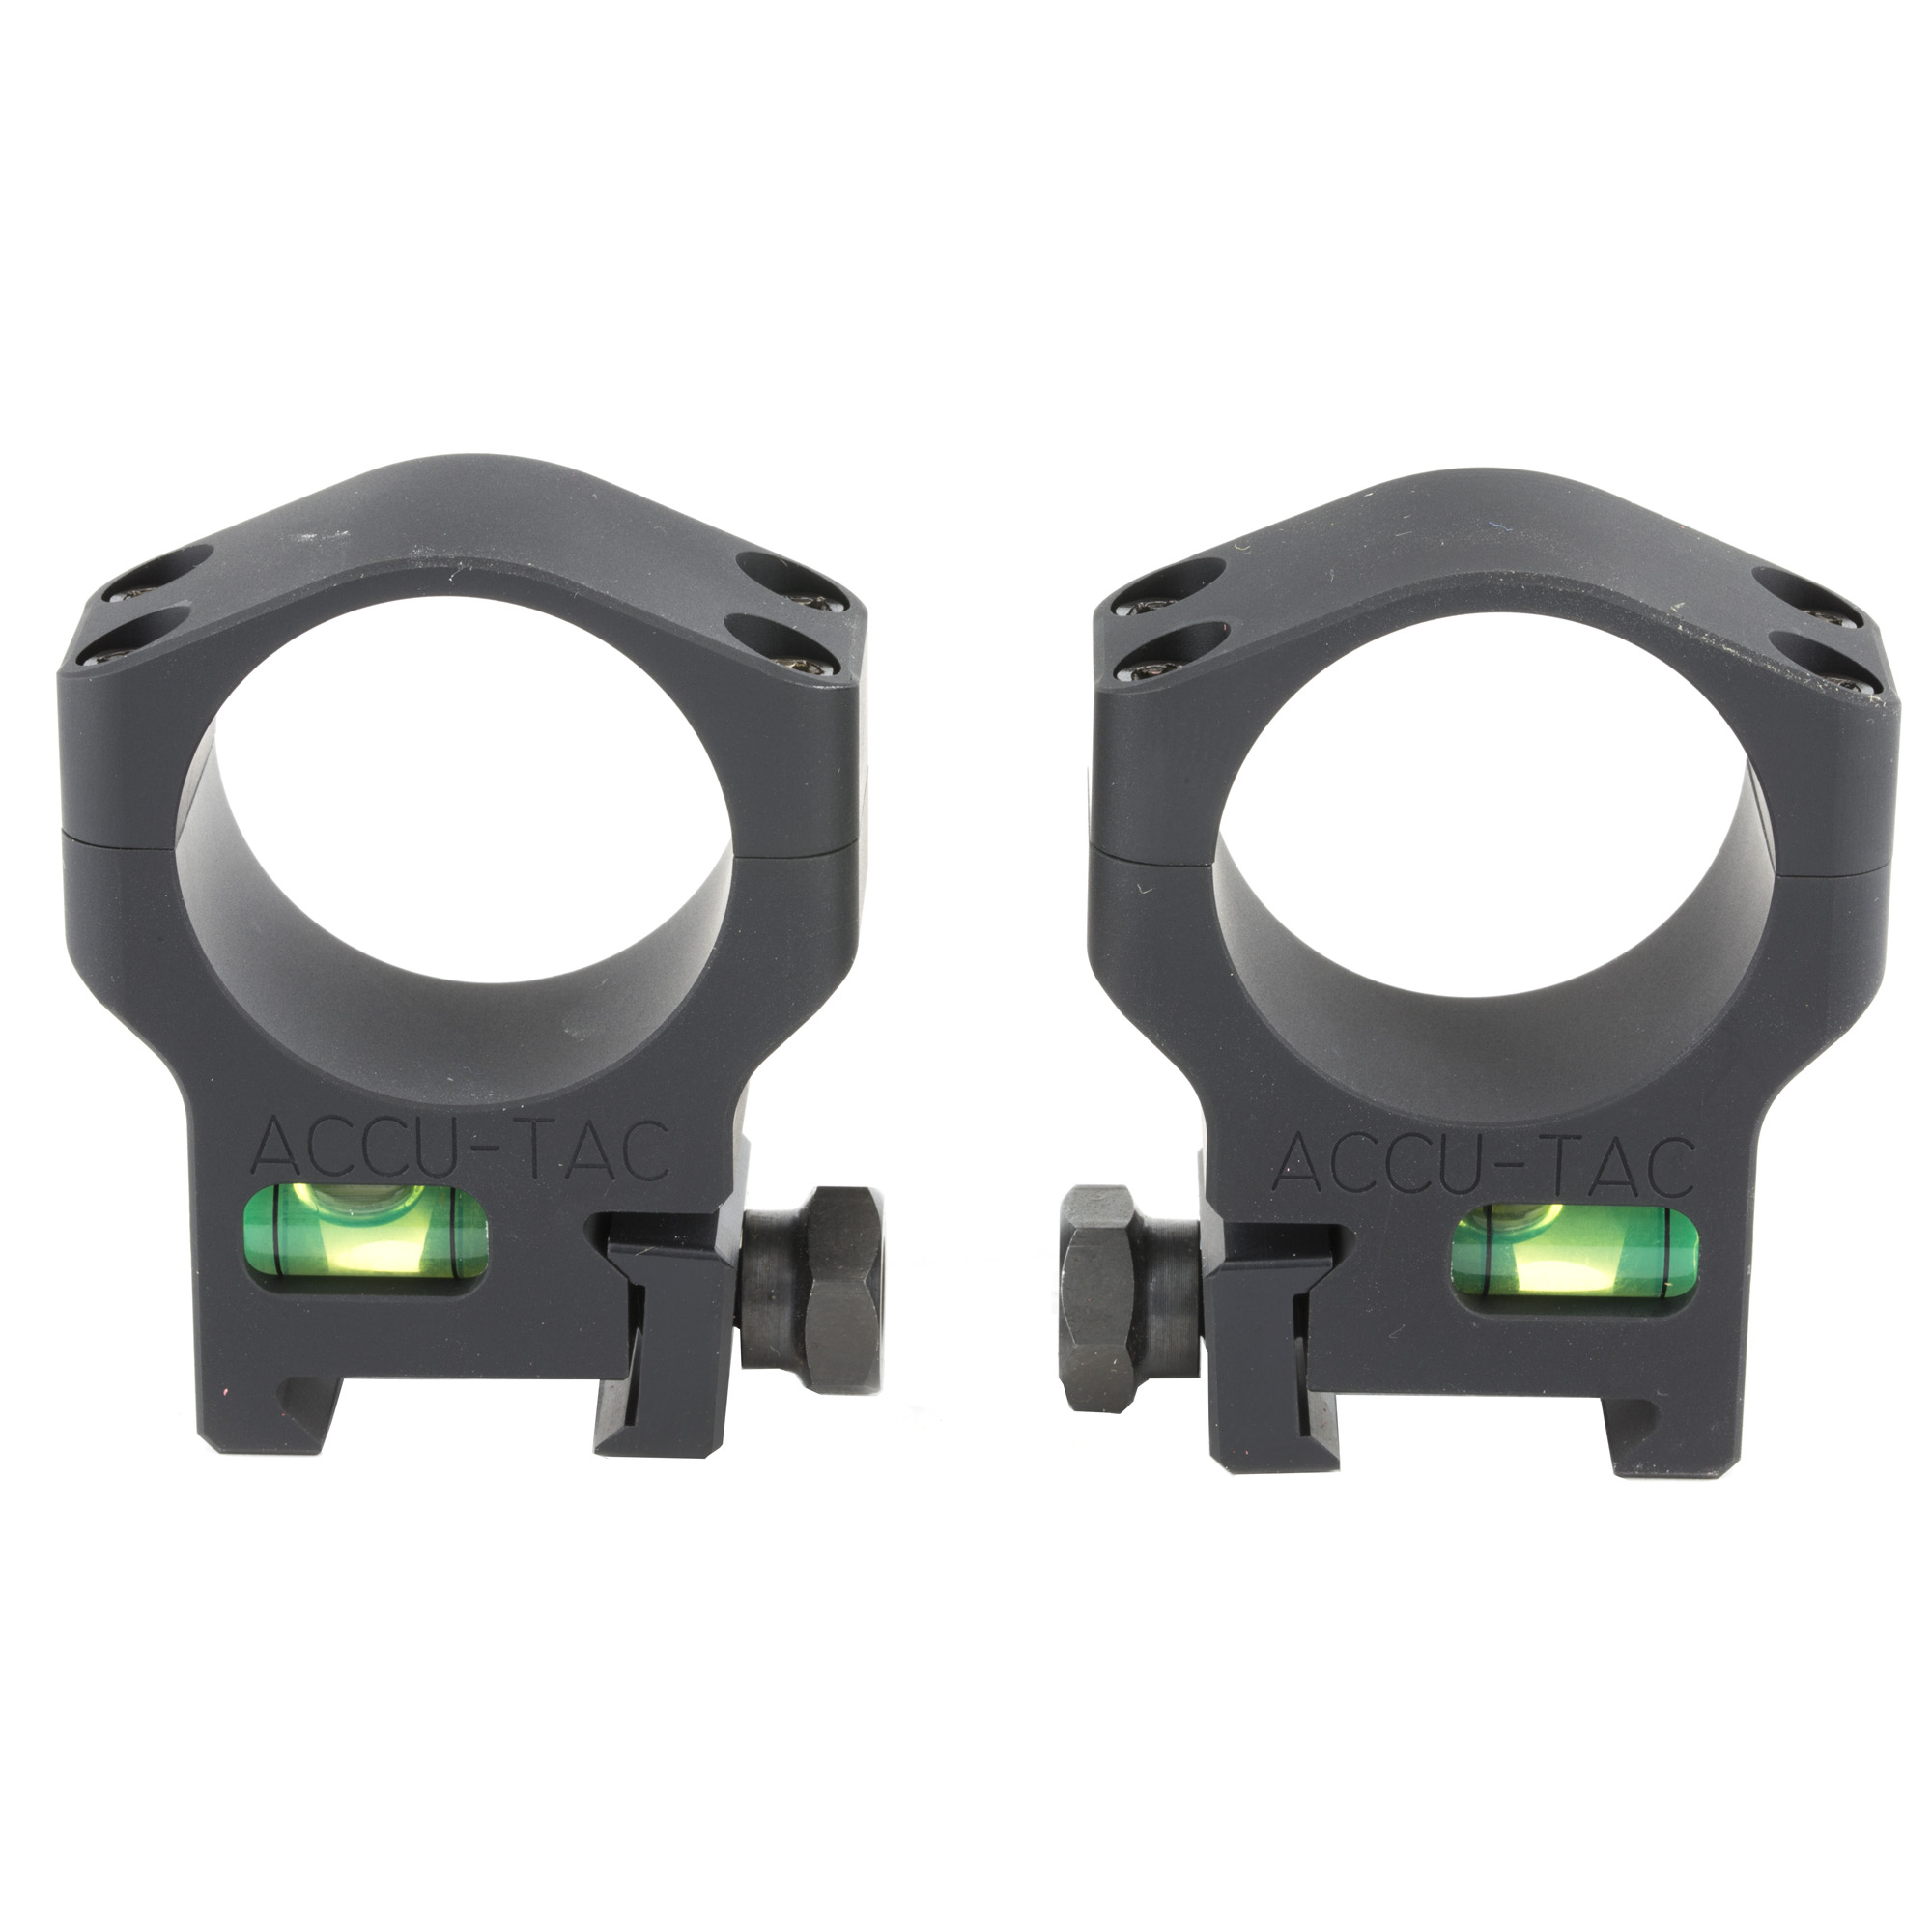 Accu-tac Scope Rings 34mm Blk